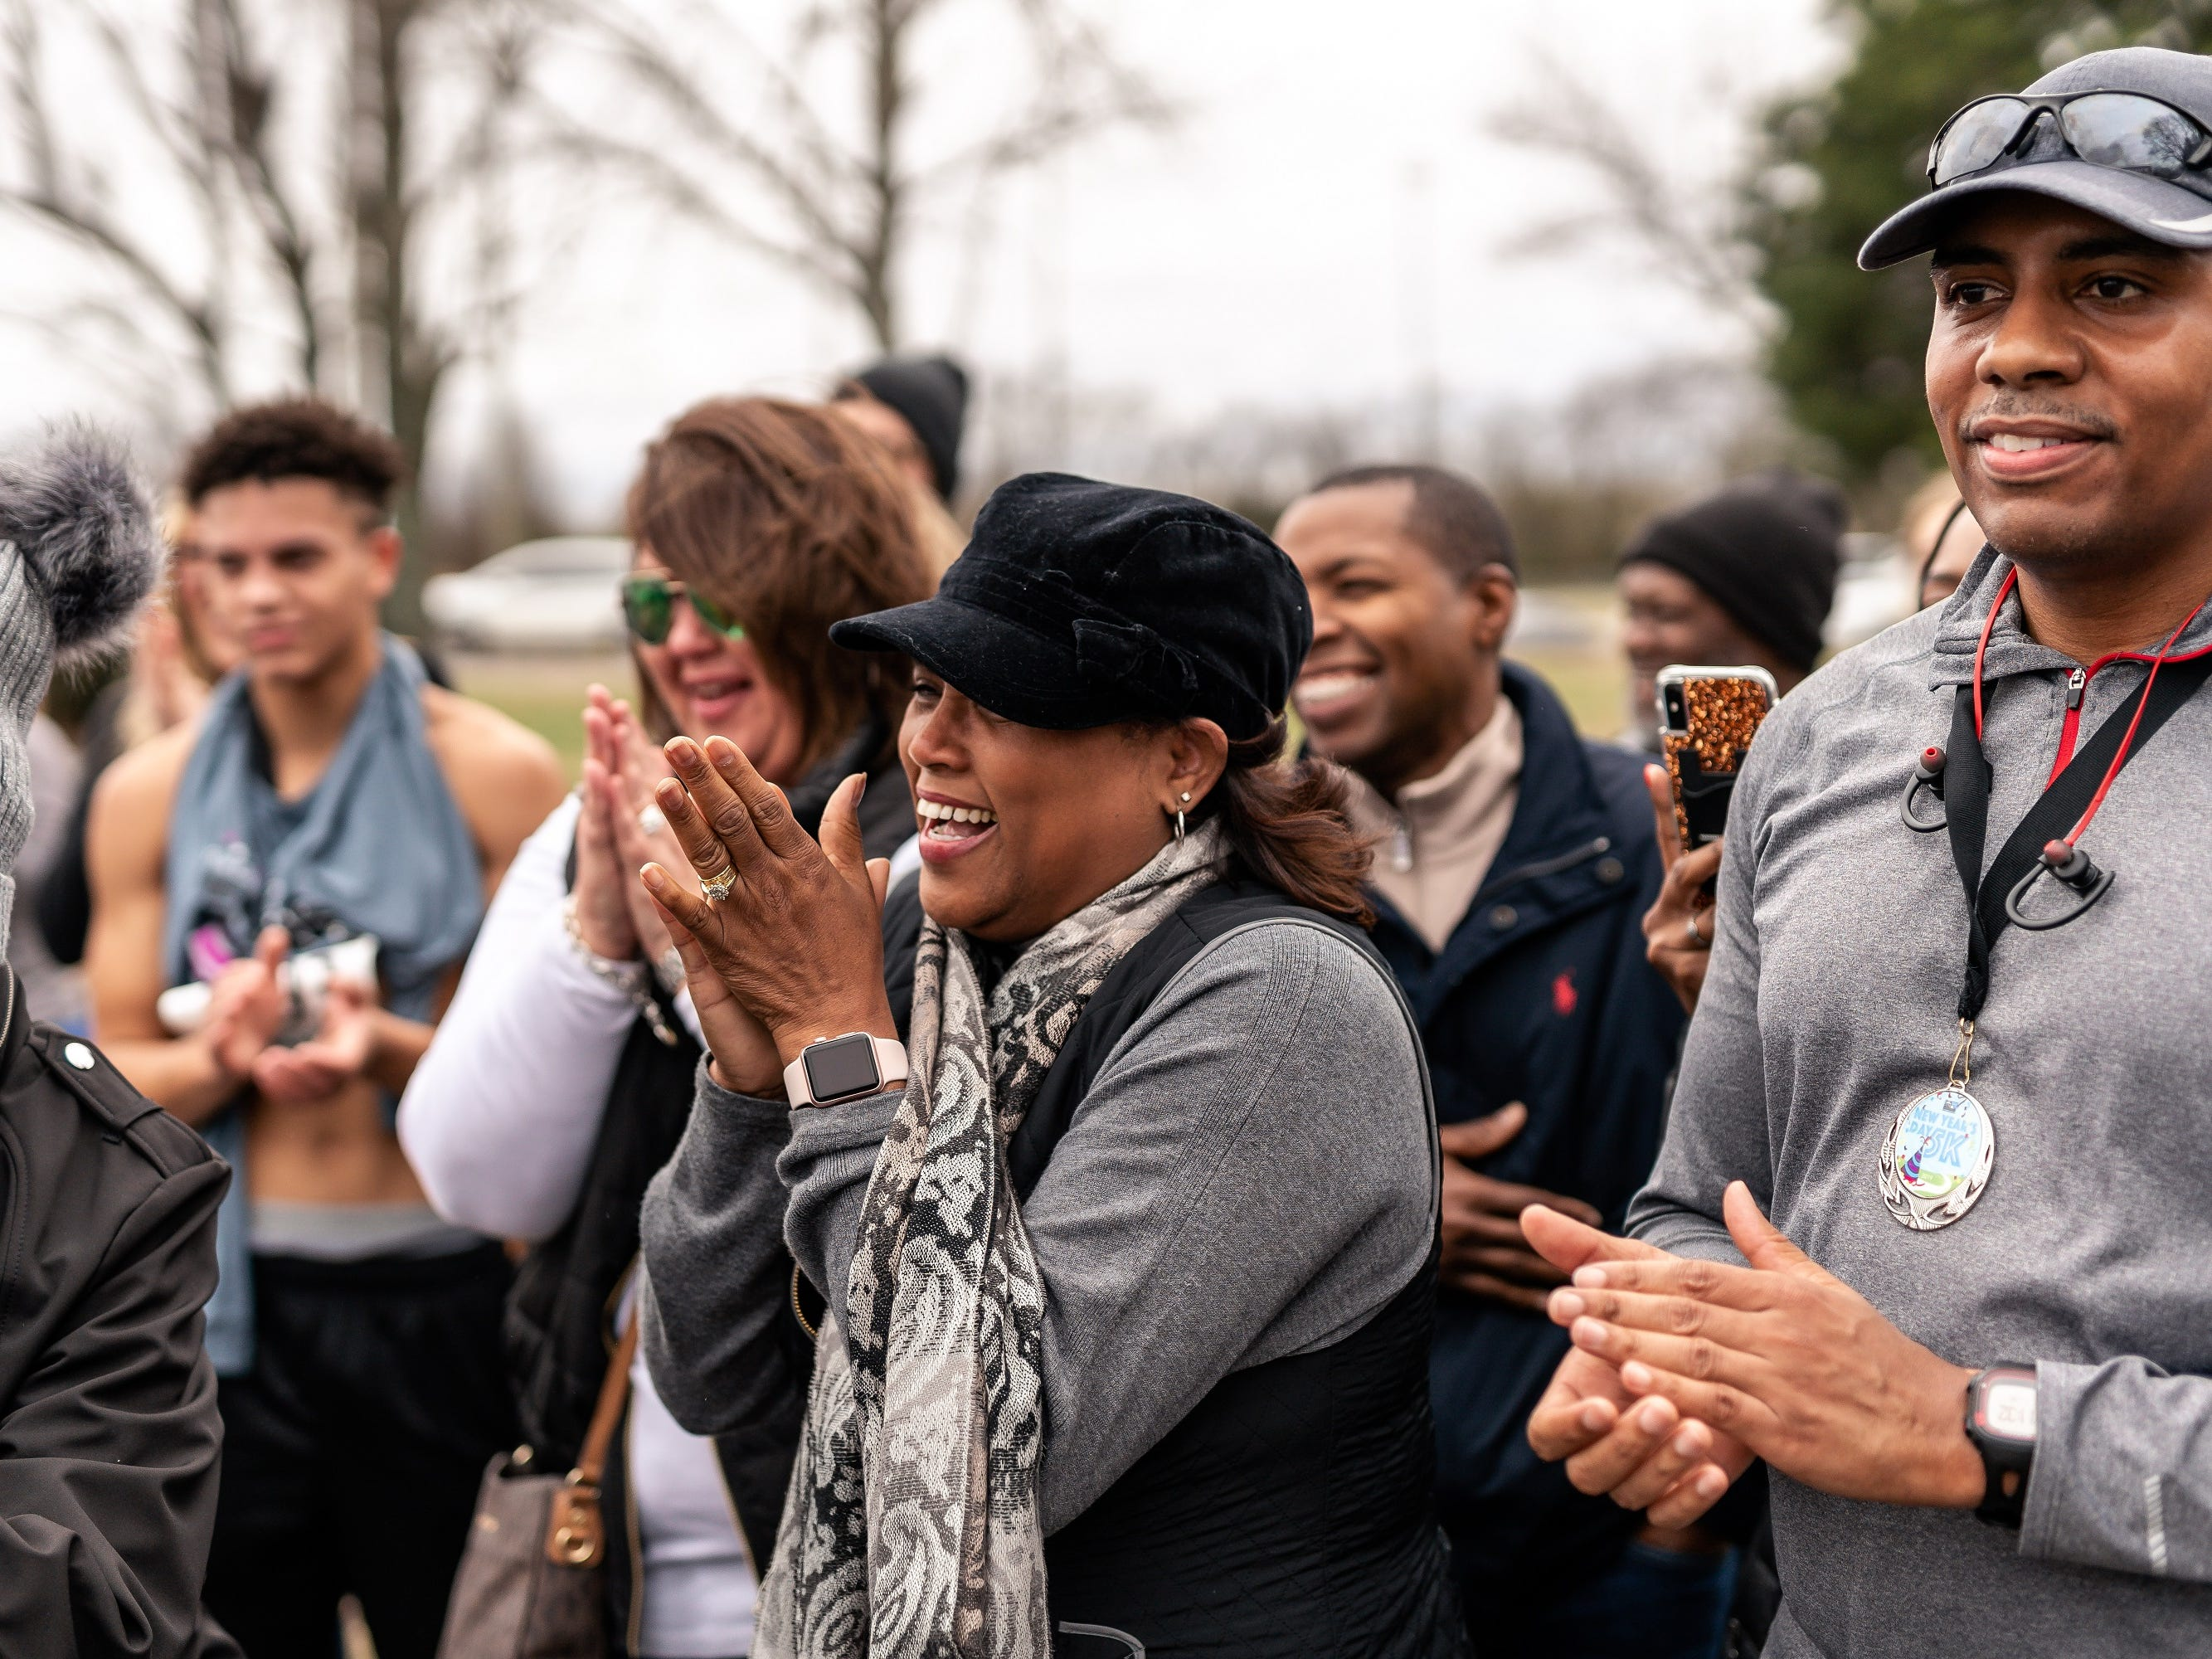 Friends and family were present when Joshua Crutchfield proposed to long-time girlfriend, Tiffany Smith, after they finished the Murfreesboro New Year's Day 5K.